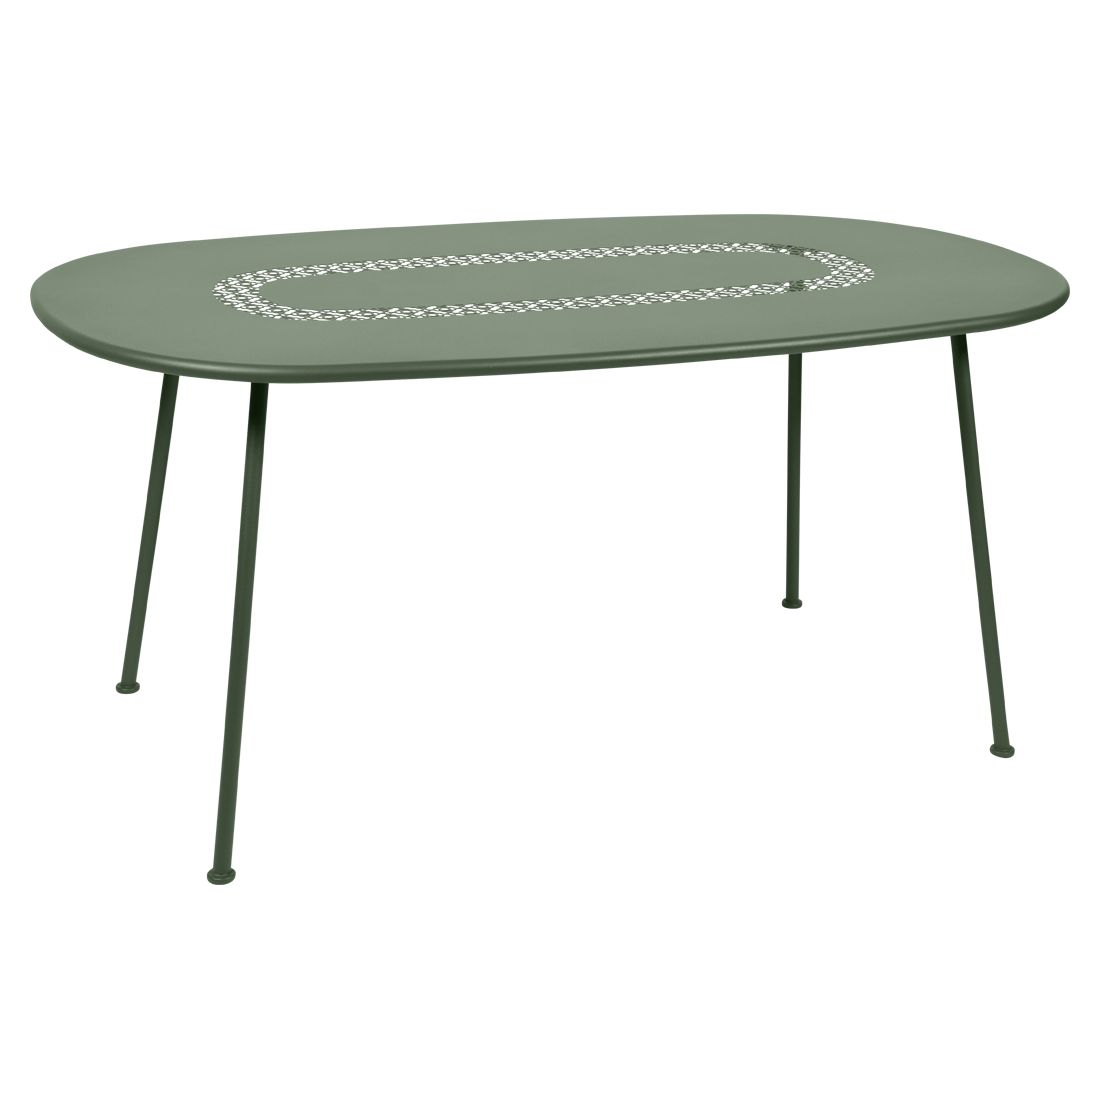 Lorette oval table